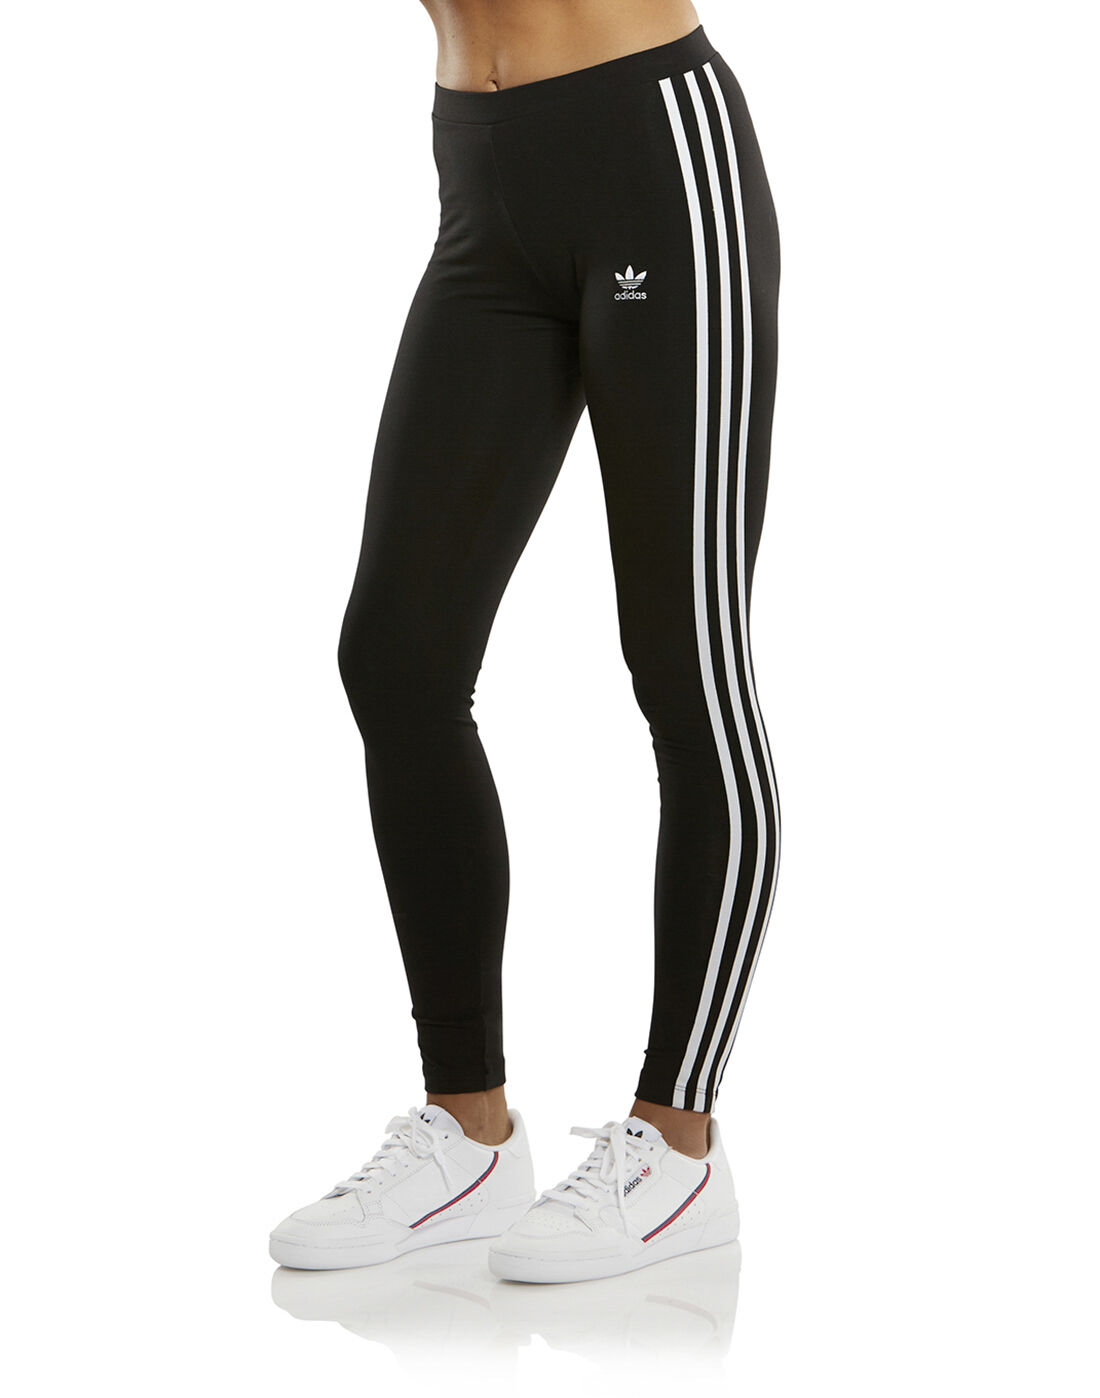 Women's Clothes & Tracksuits | adidas & Nike | Life Style Sports